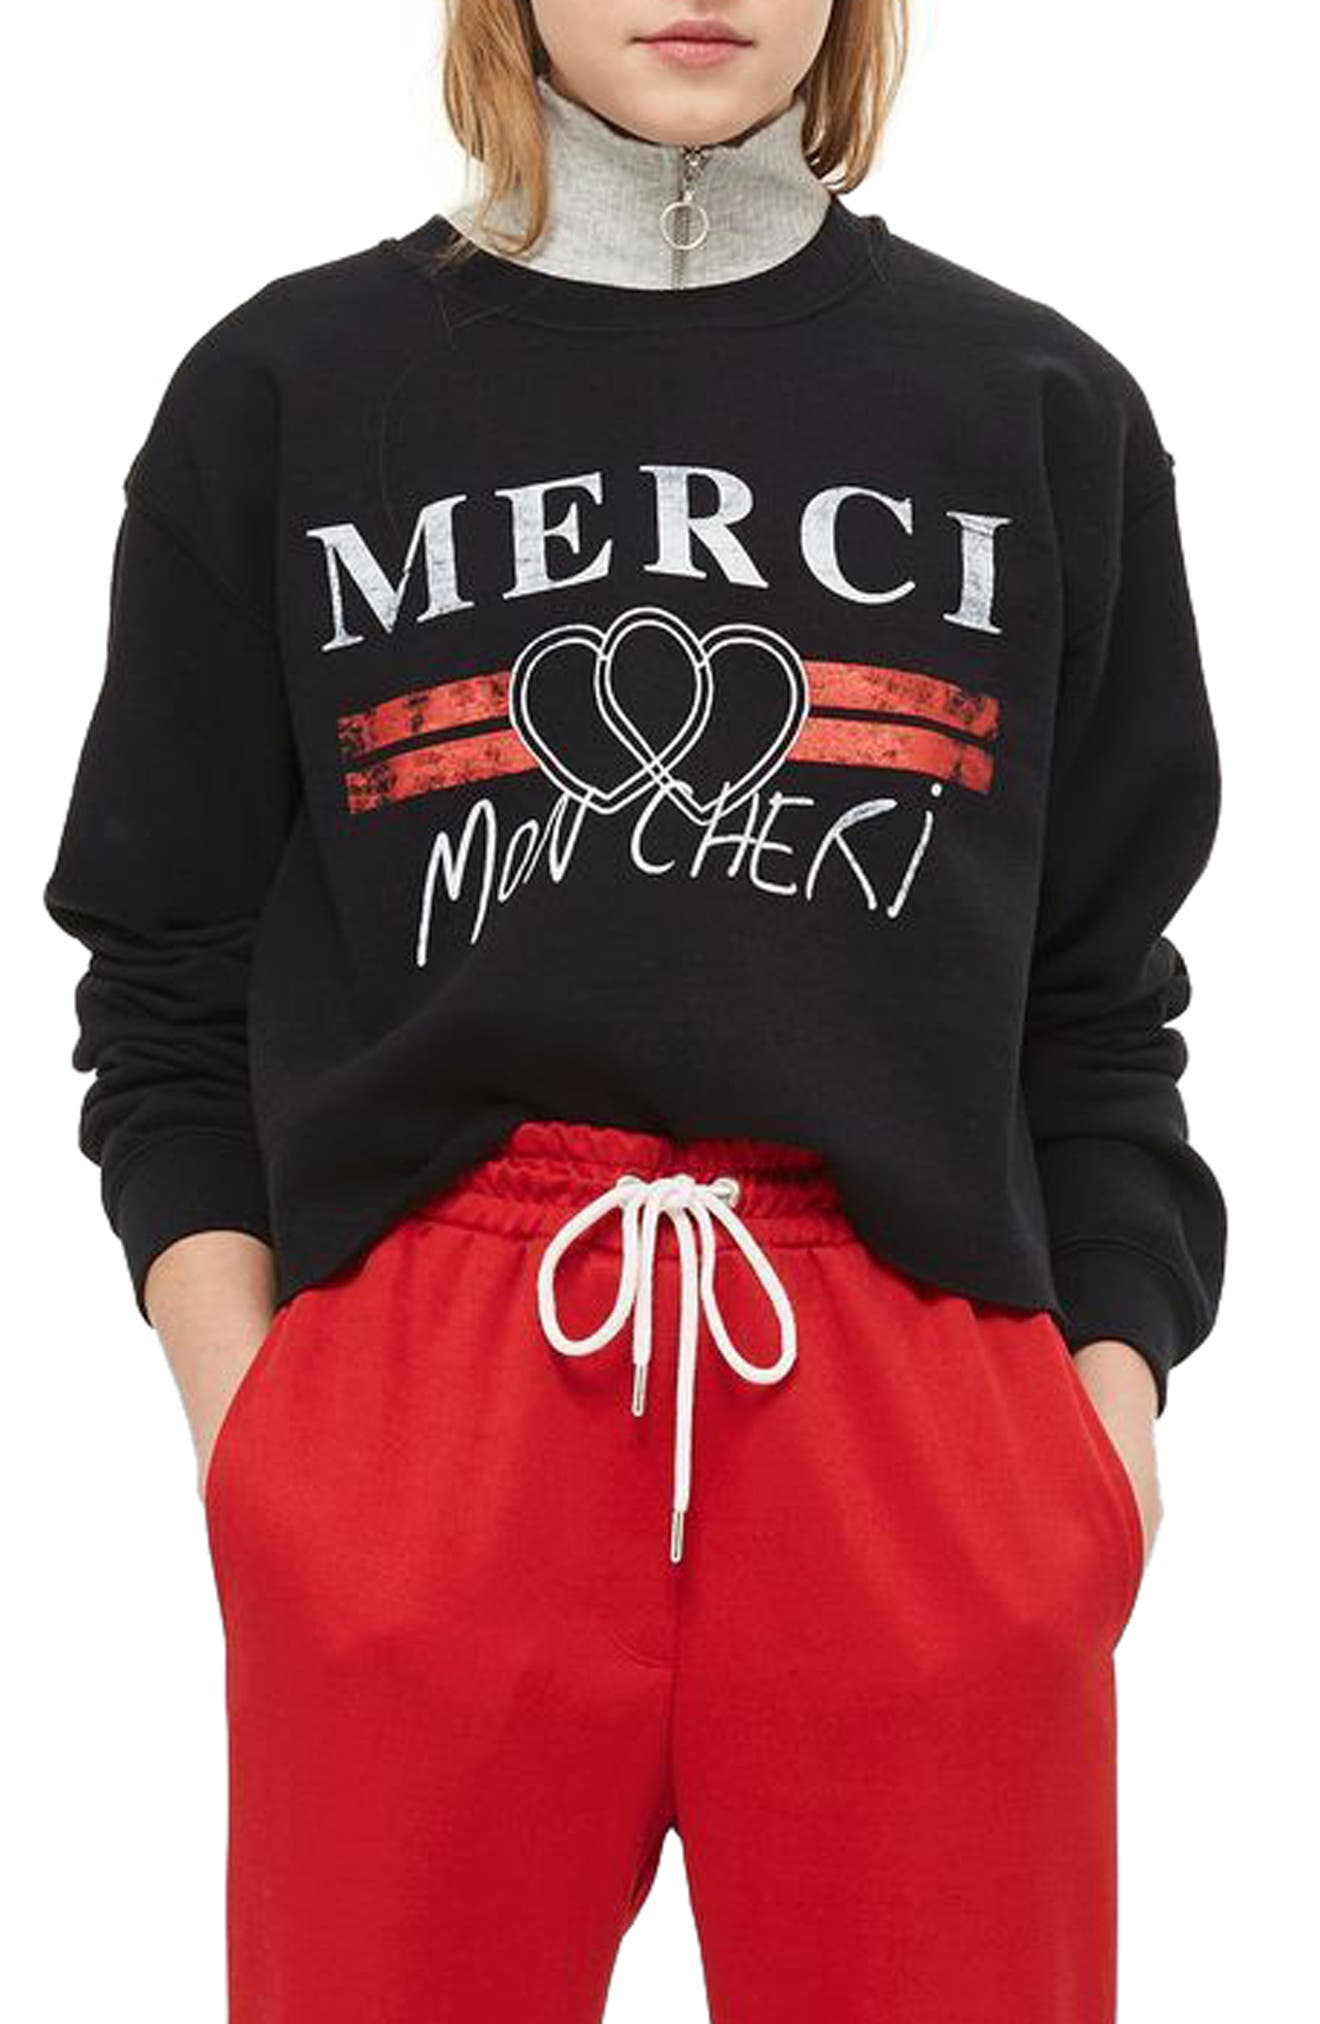 Merci Crop Sweatshirt,                             Main thumbnail 1, color,                             Black Multi